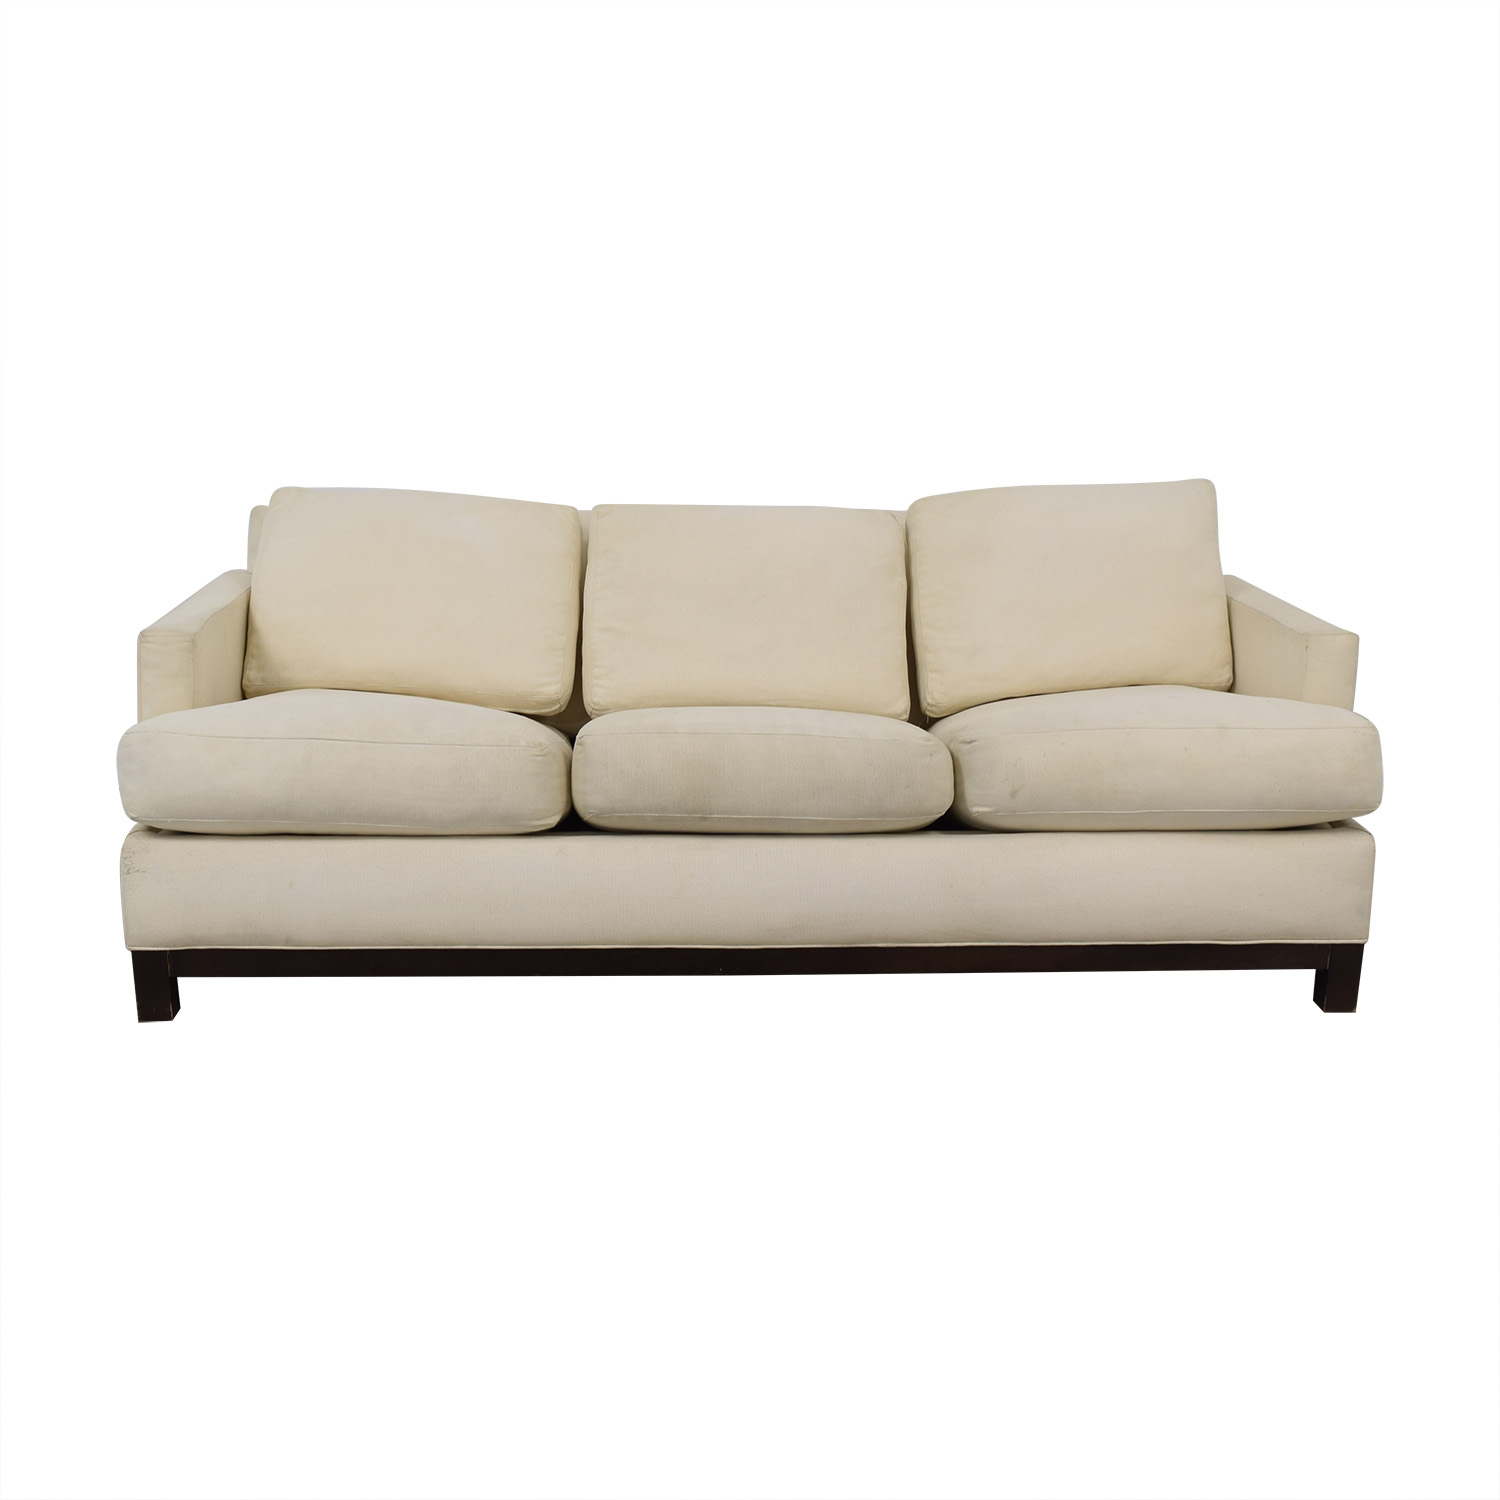 Rowe Furniture Rowe Furniture Queen Sleeper Sofa ma